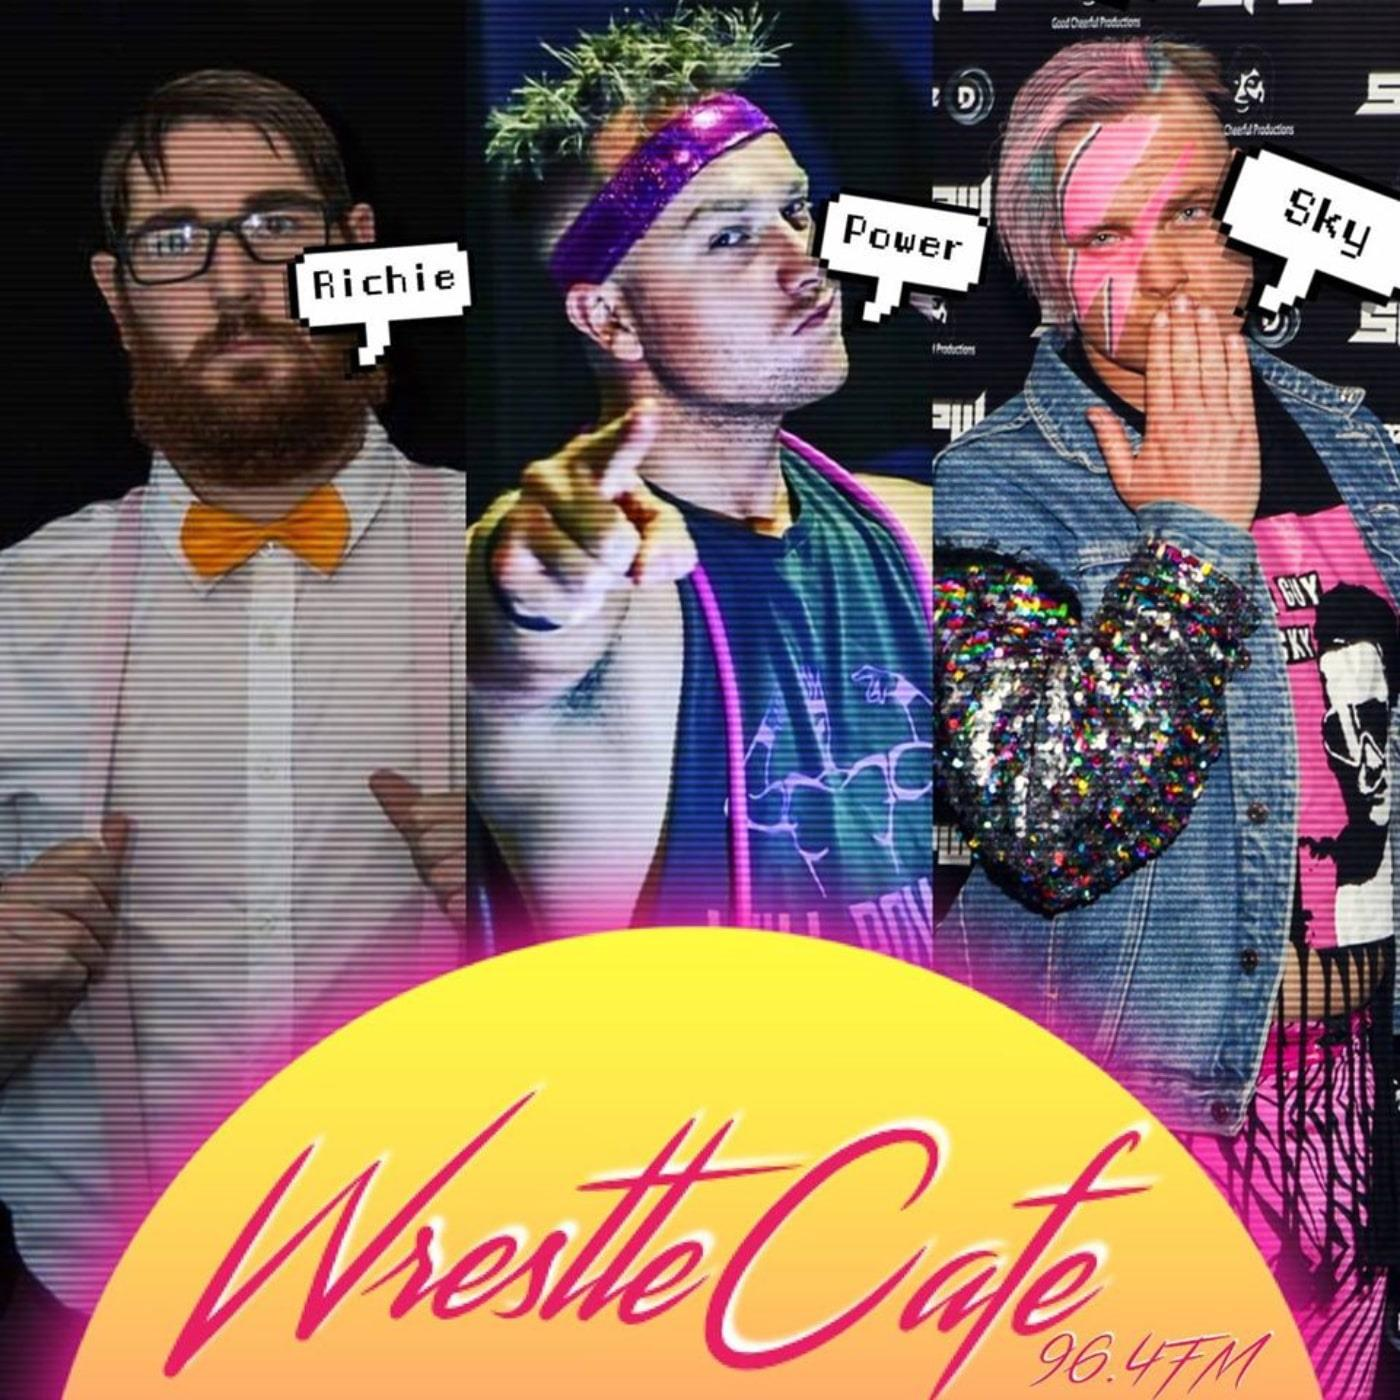 WrestleCafe - Richie, Power, and Sky